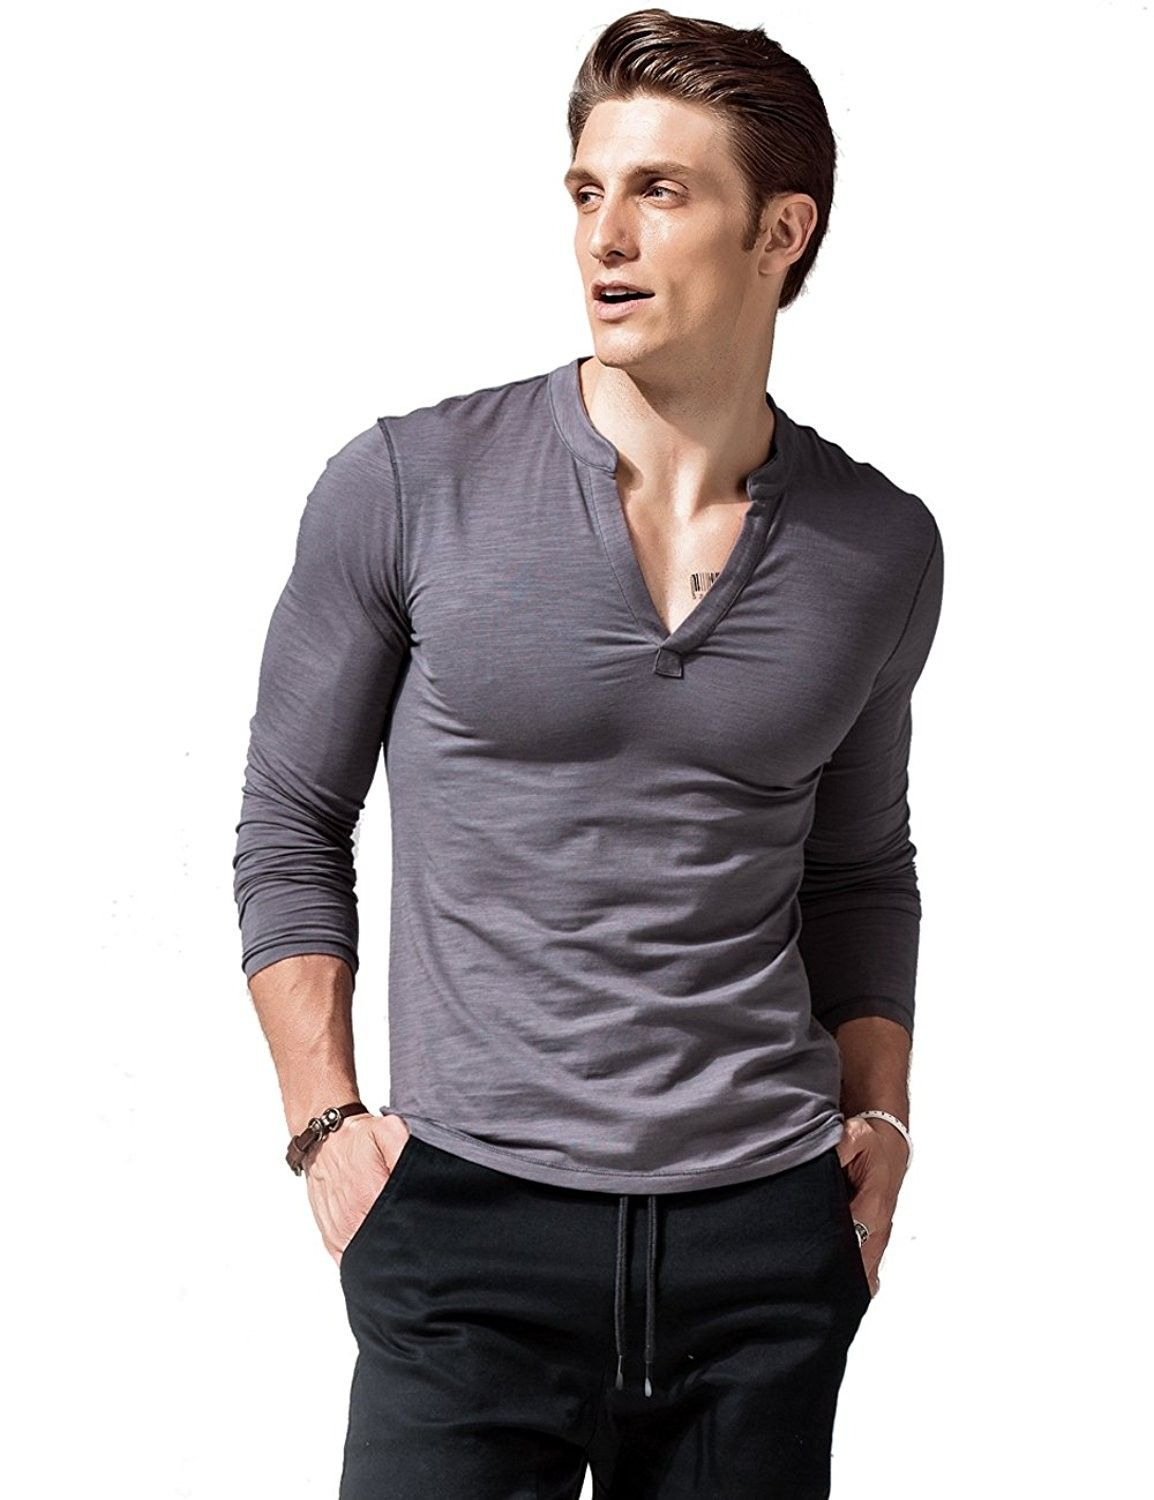 Mens Long Sleeve T Shirts Slim Fit Deep V Neck Athletic Casual Dark Grey C1187dk2ahm Men S Long Sleeve T Shirt Mens Casual Outfits Mens Outfits